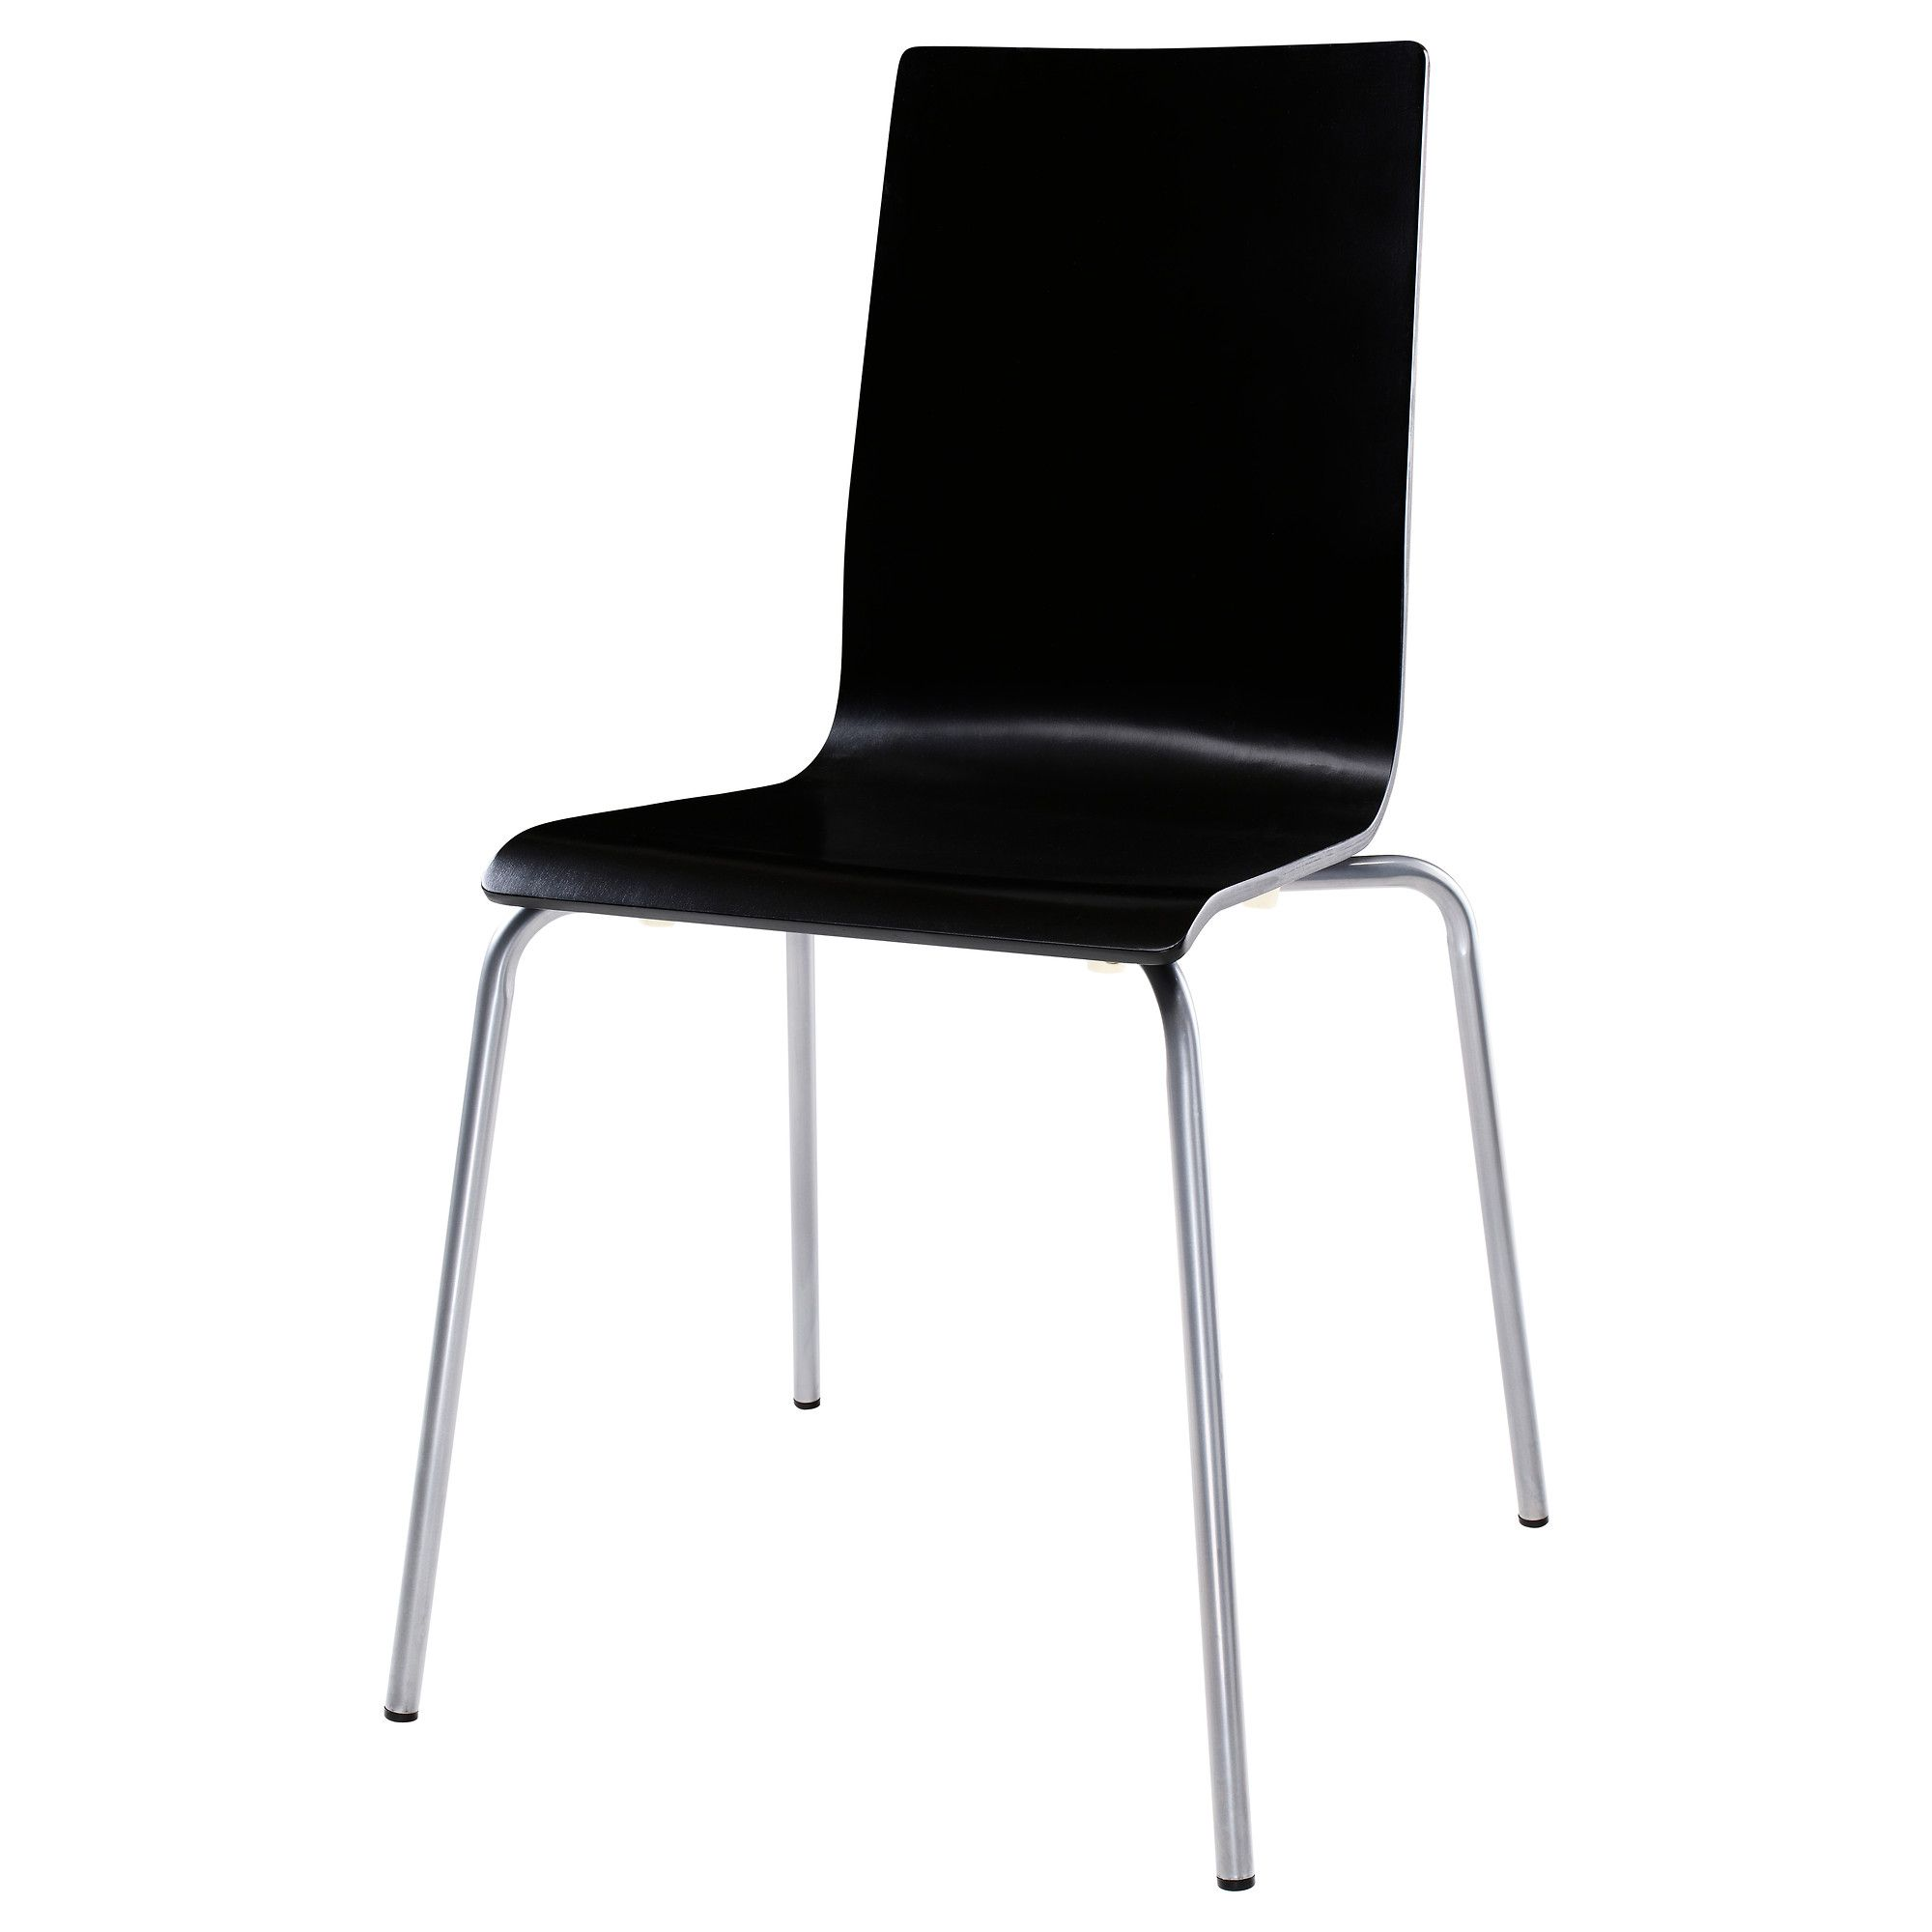 Chaise Martin Ikea Martin Chair Silver Color Black 24 99 Chairs Ikea Dining